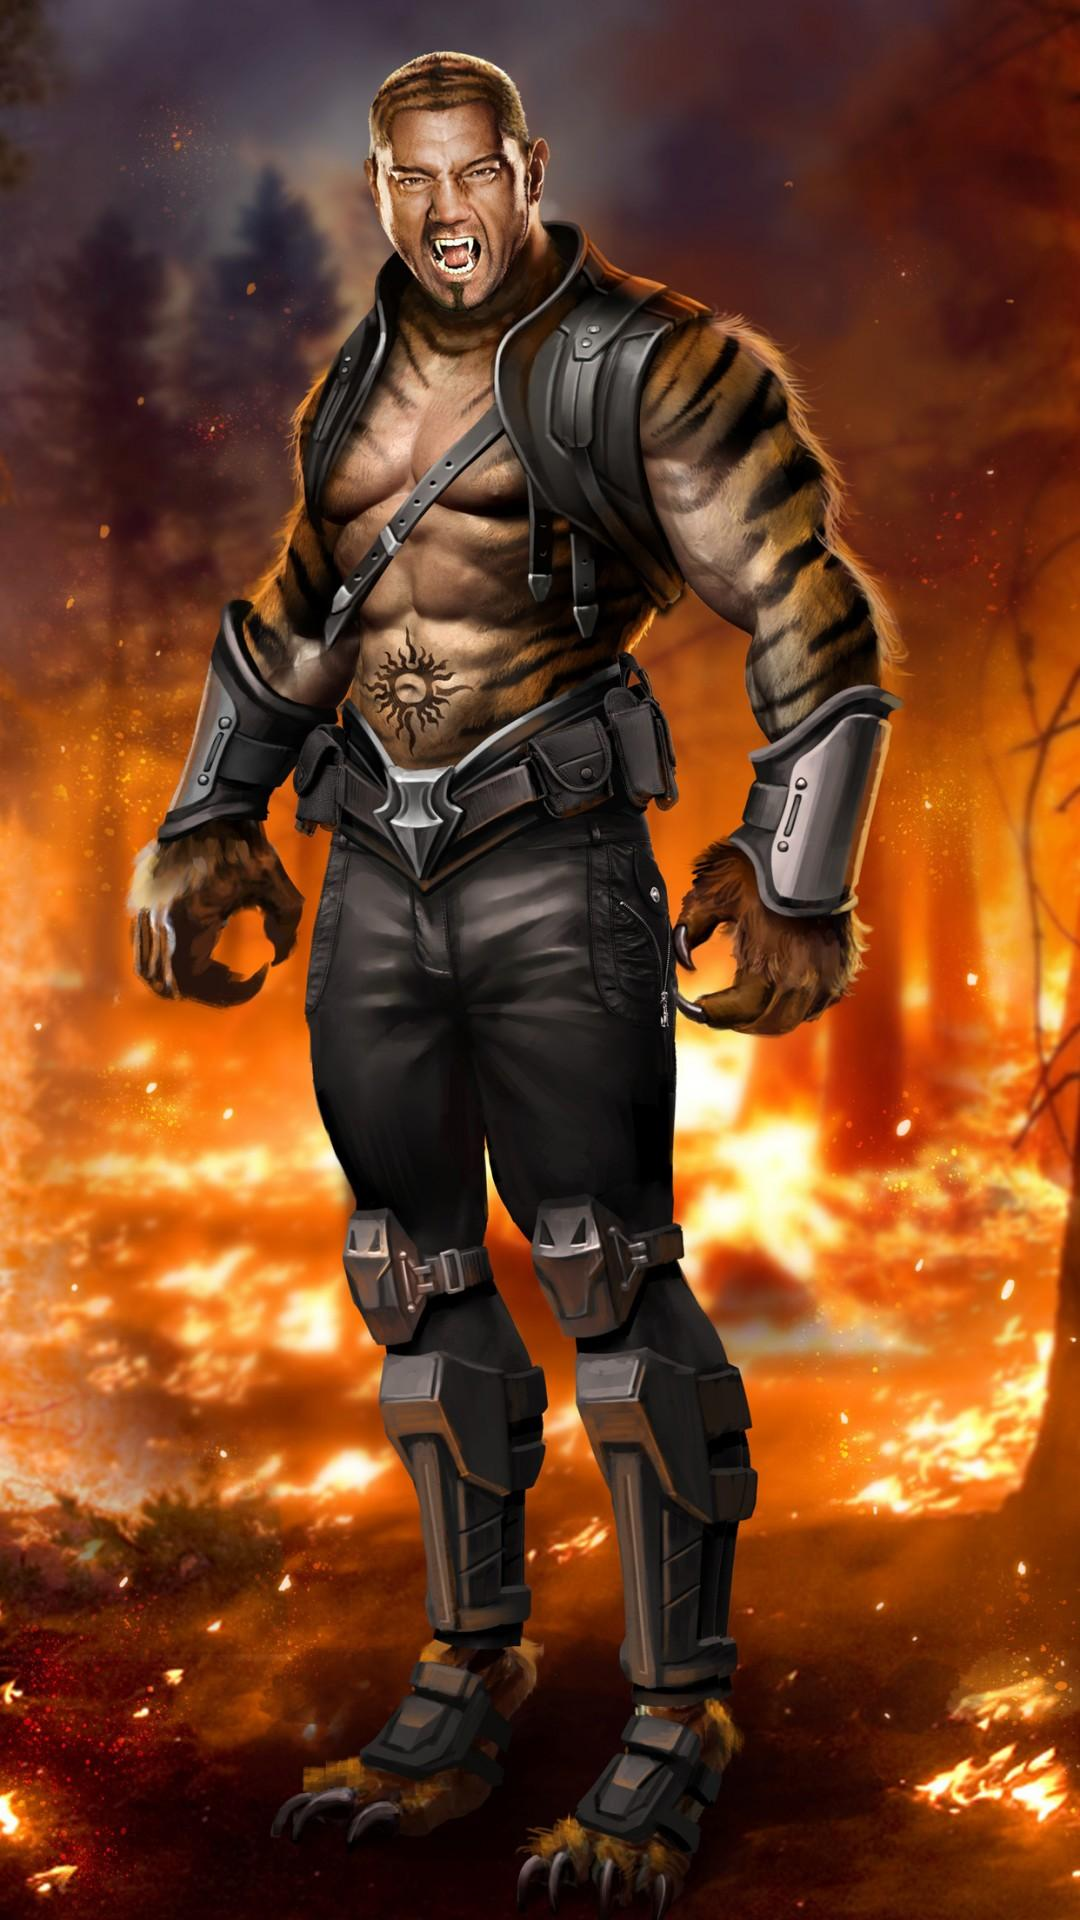 Cool 3d Skull Wallpapers Mobile Wallpapers Wwe Immortals Wallpapers For Ios Amp Android